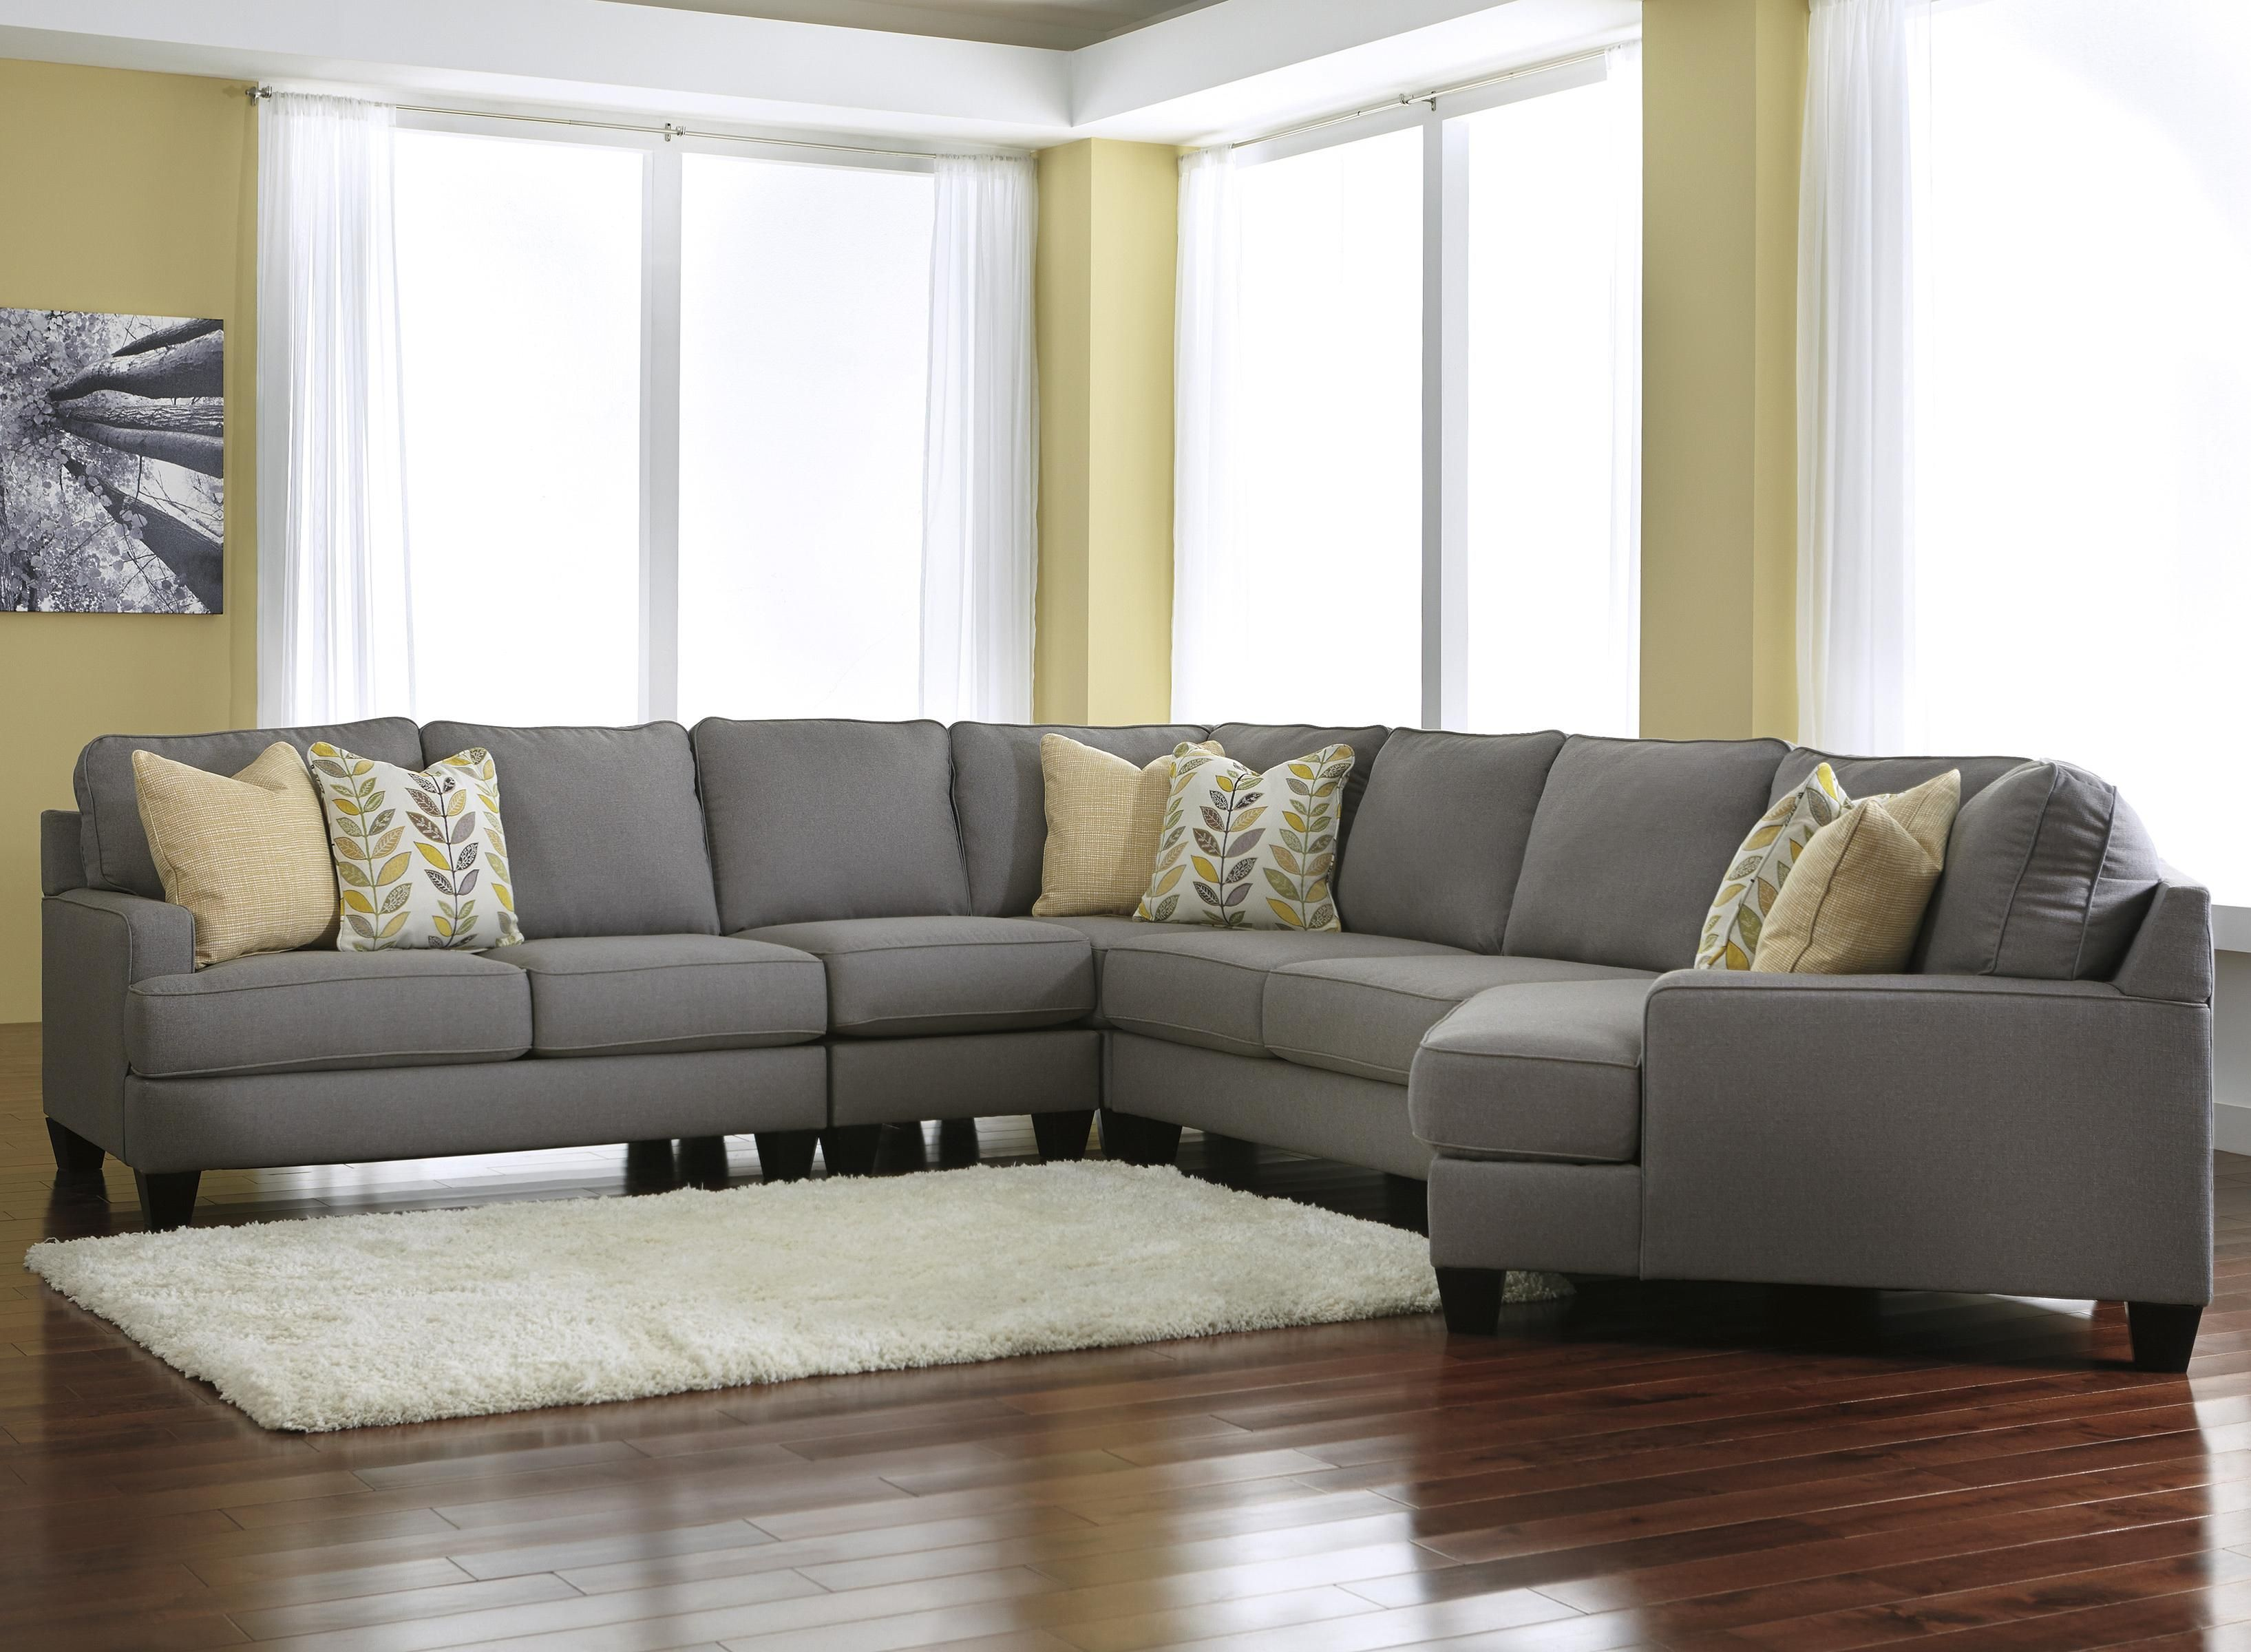 Living Room Designs With Sectionals Inspiration Chamberly  Alloy Modern 5Piece Sectional Sofa With Right Cuddler Inspiration